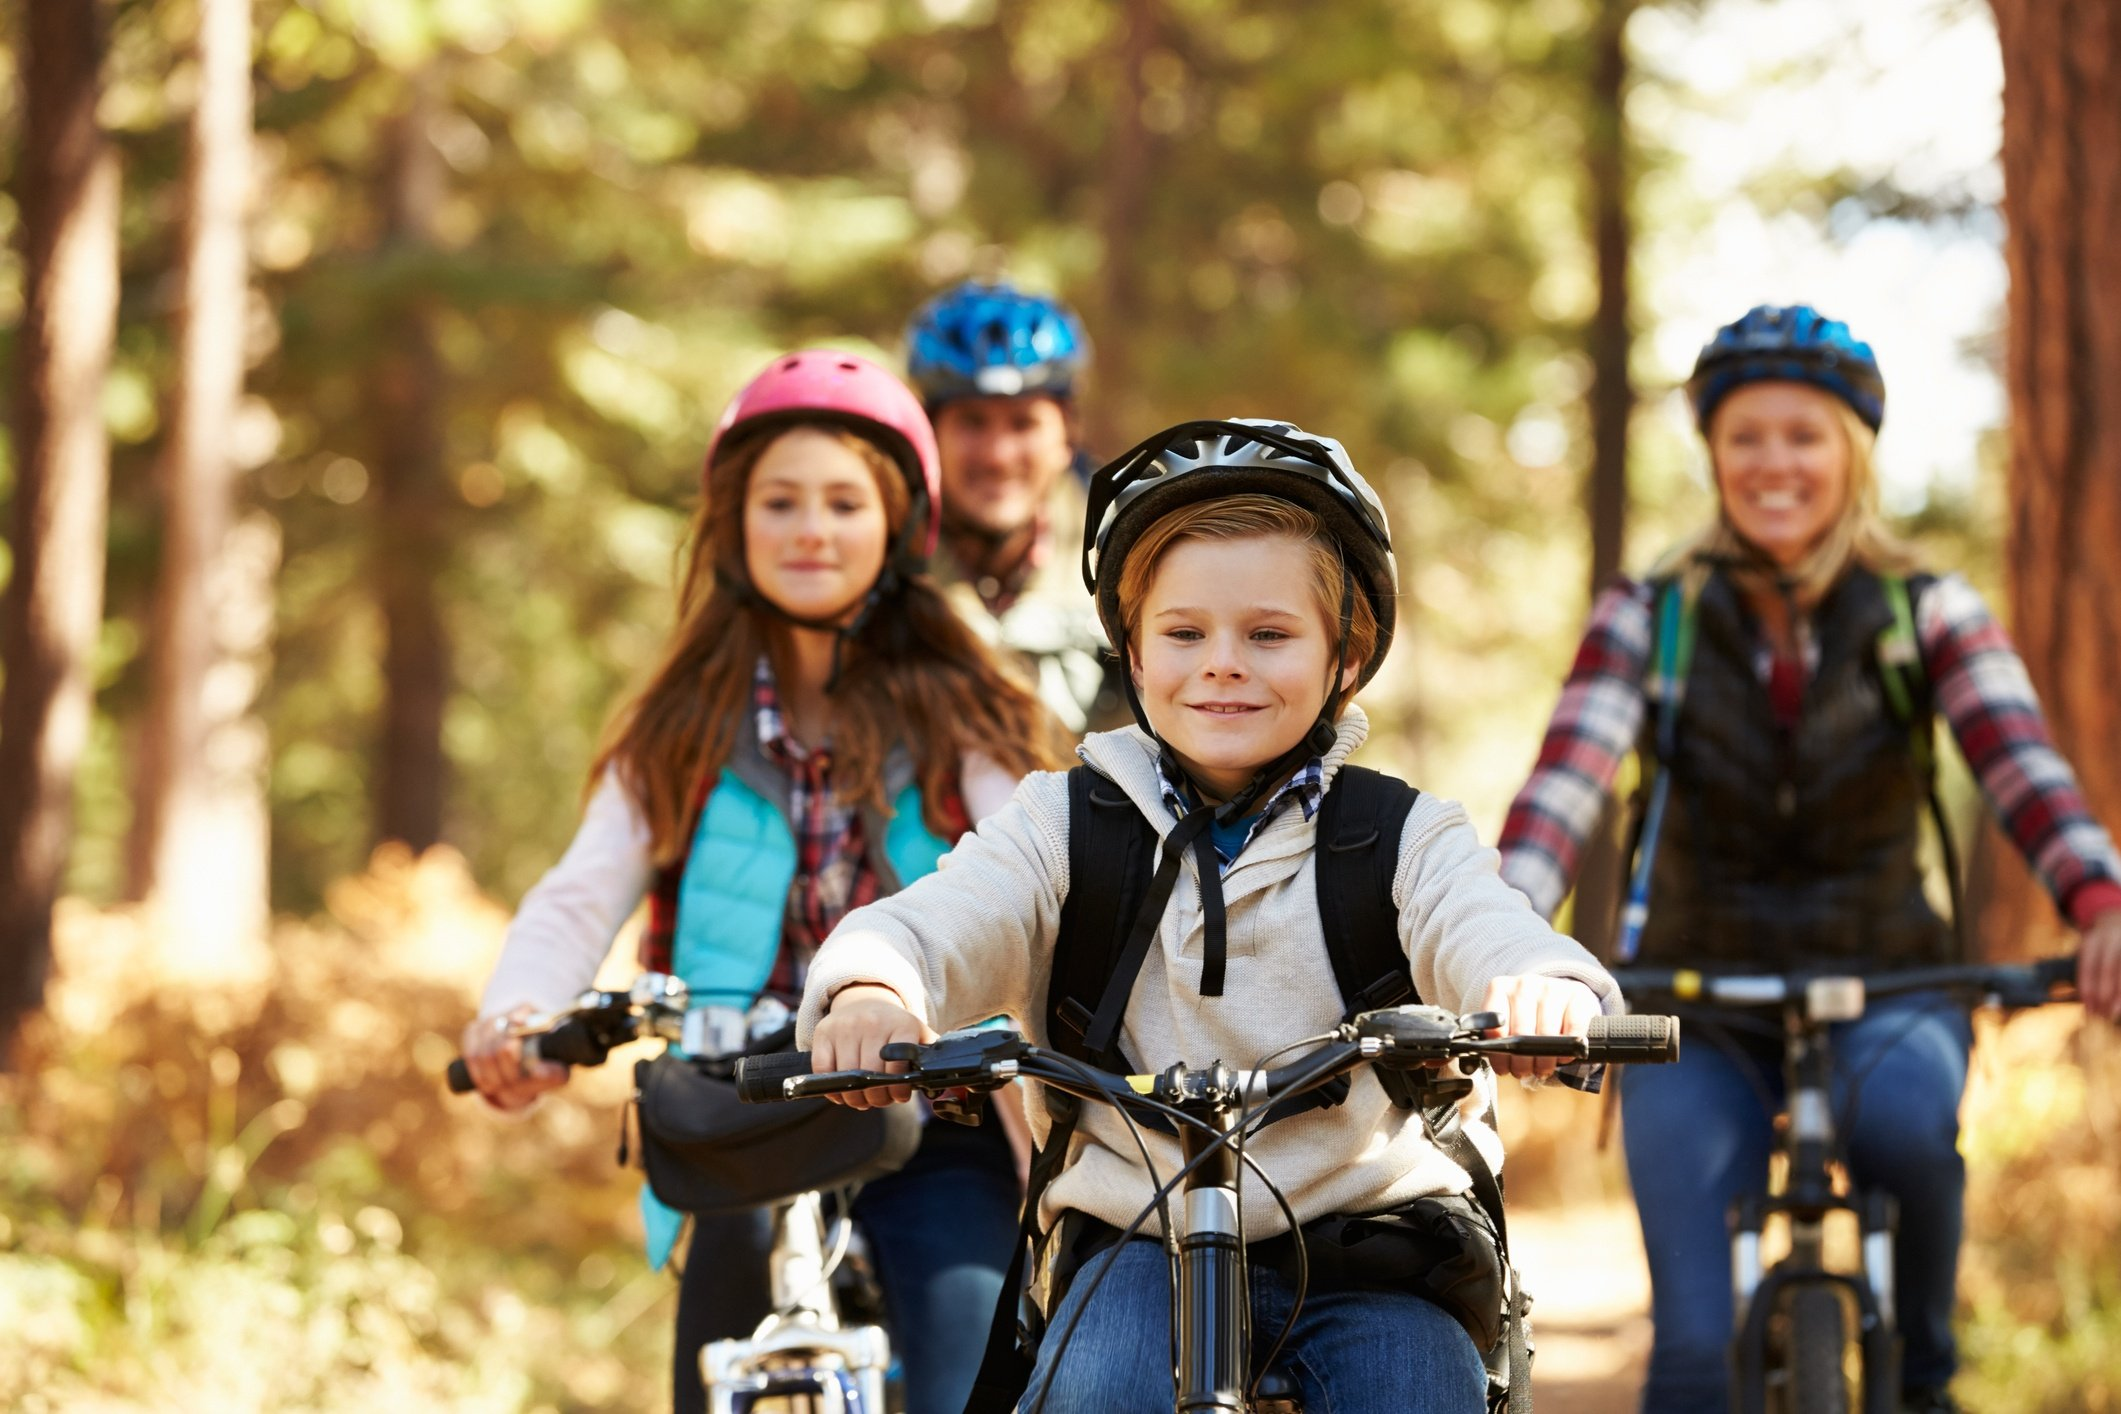 Family Biking + Bicycle Storage Tips